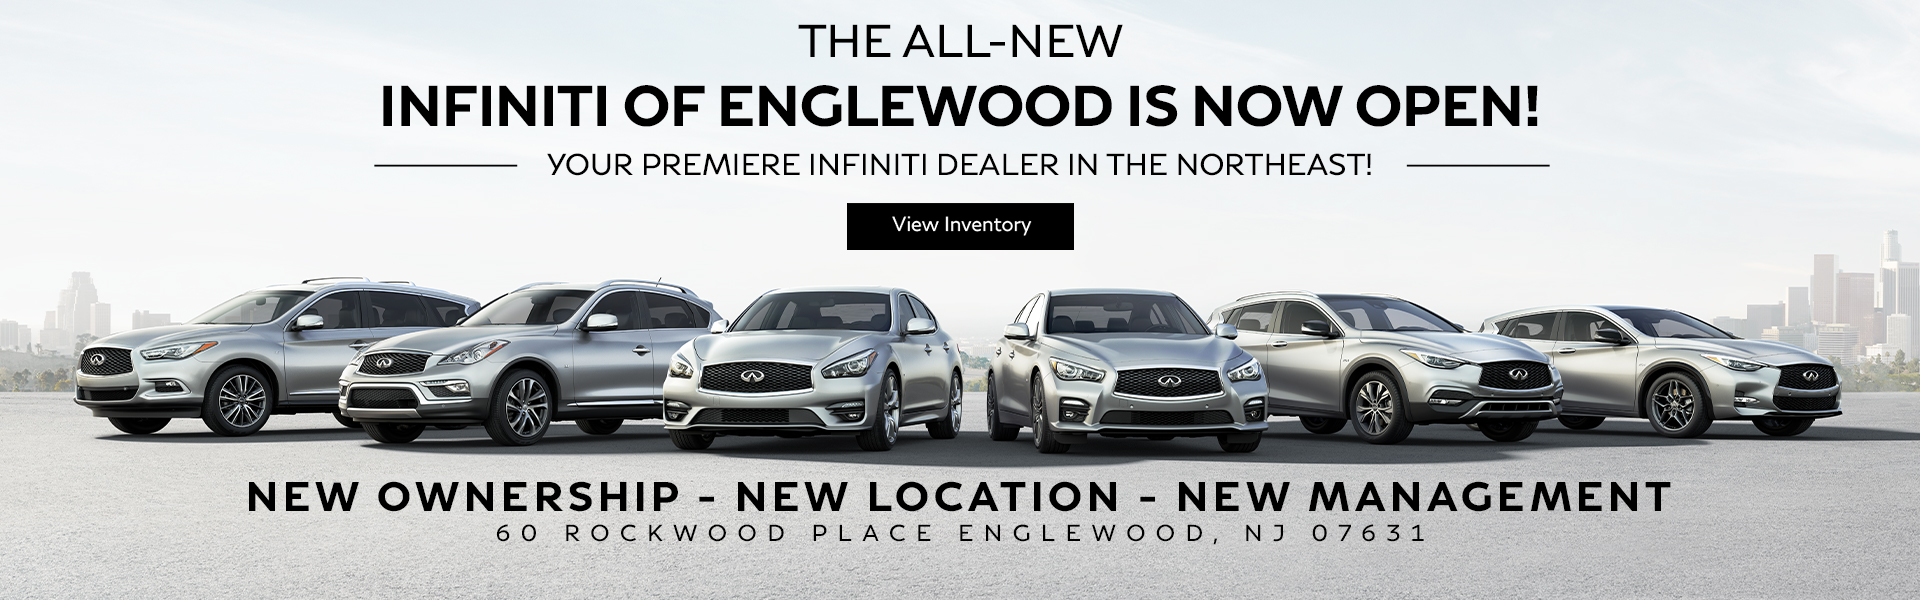 The All New INFINITI of Englewood